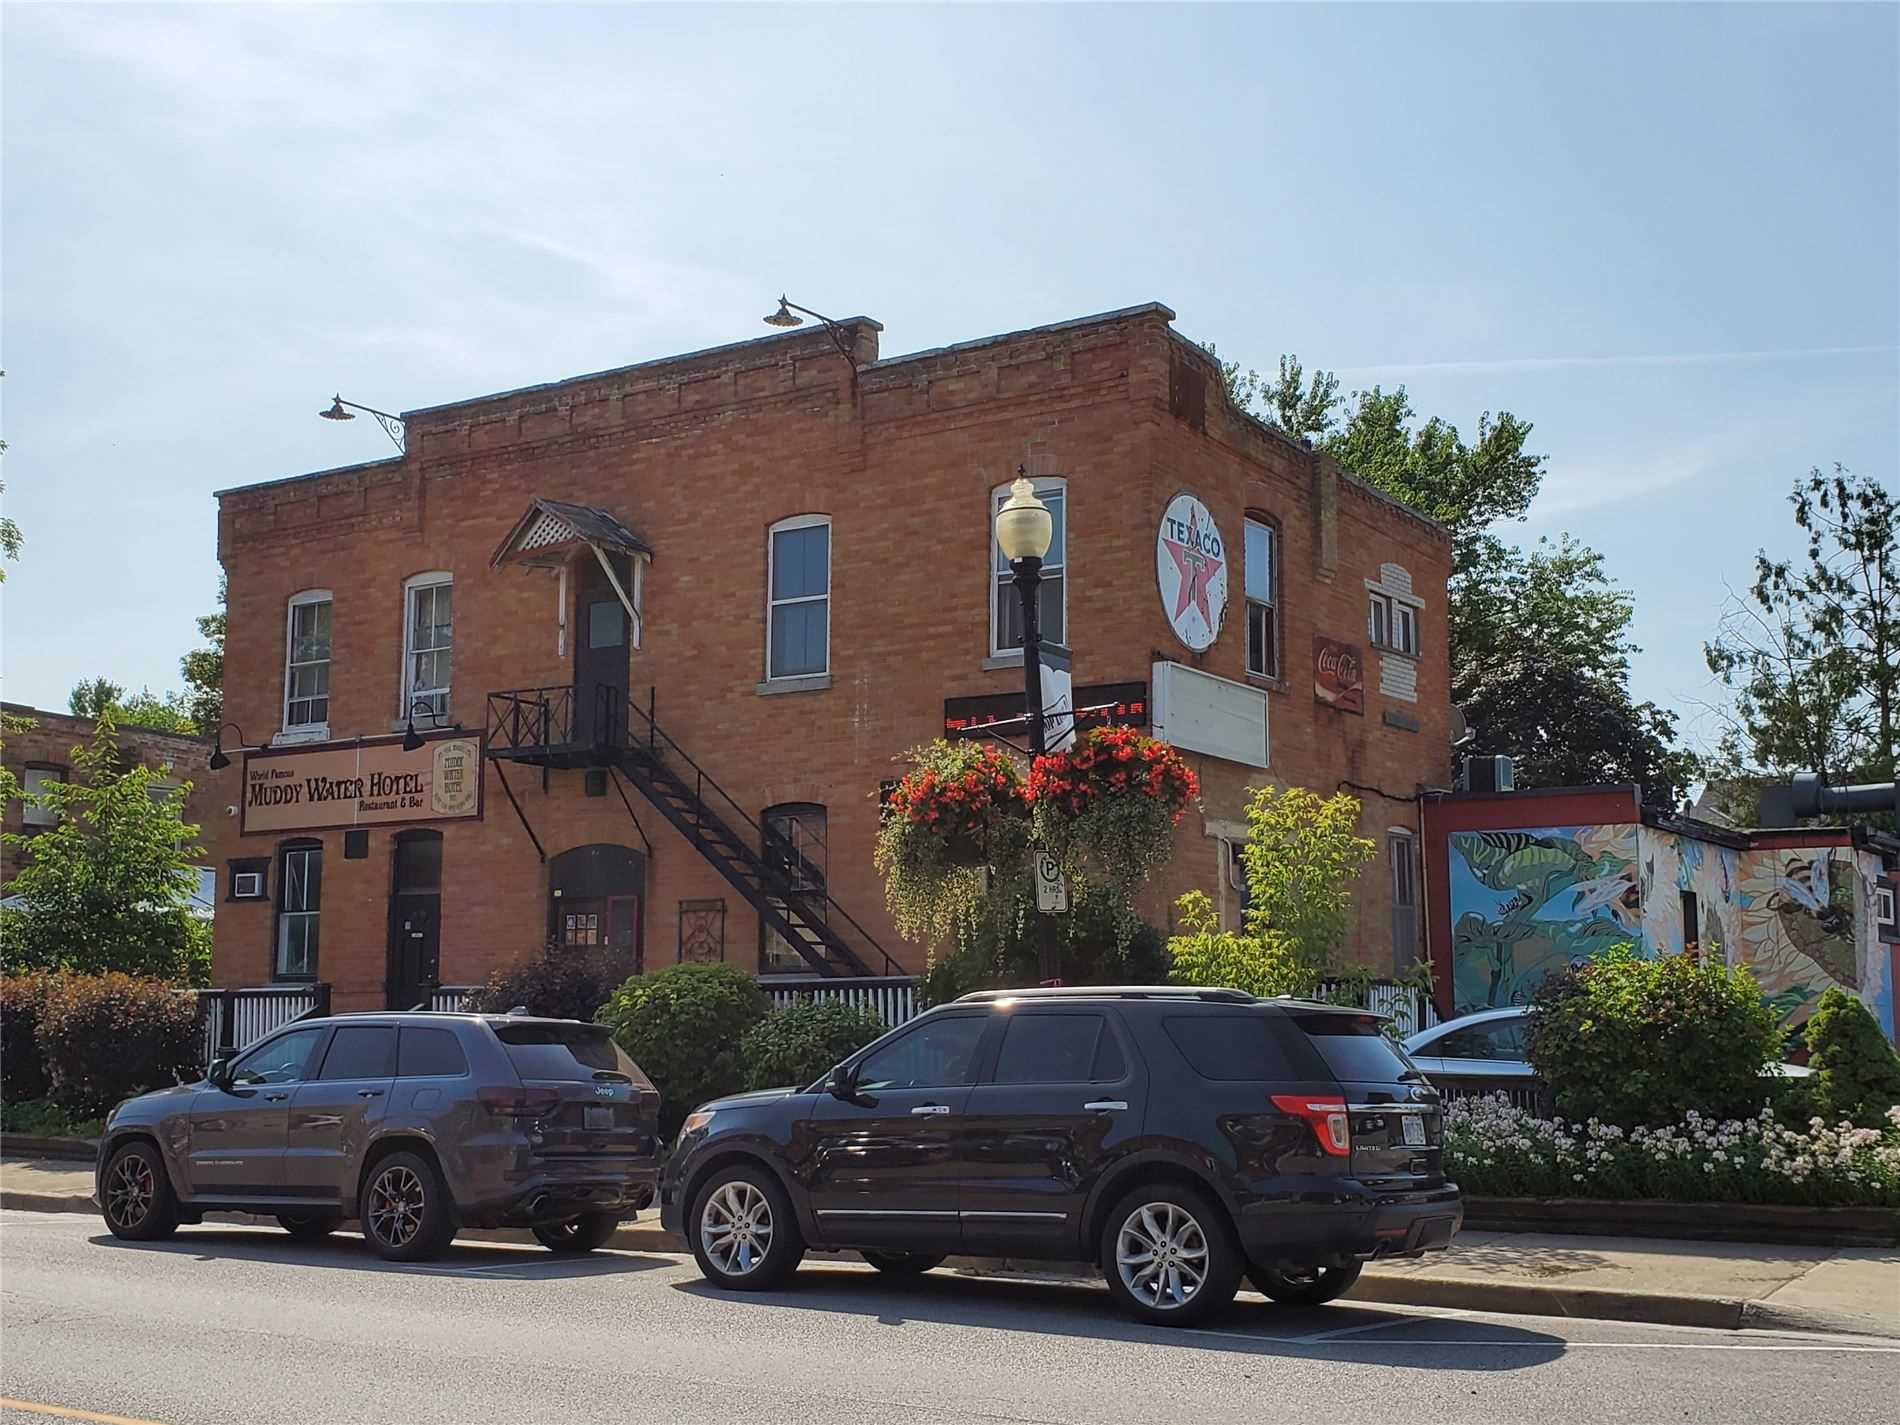 Business Only For Sale.Legendary Restaurant/Bar For Sale In Beeton! The Muddy Water Hotel Is In An Ever Growing Community! Lots Of Original Charm From This 100+ Yr Old Business. Room To Change To Suit Future Needs. 2 Patios-Front & Back.Front Porch To Watch The Downtown And  Back Patio With Trees ? For Shade And Privacy Pool Room,Huge Bar, Beer Fridge, Separate Dining Area With Booths, Full Kitchen With Walk In Fridge.Will Negotiate New Lease With Purchaser.